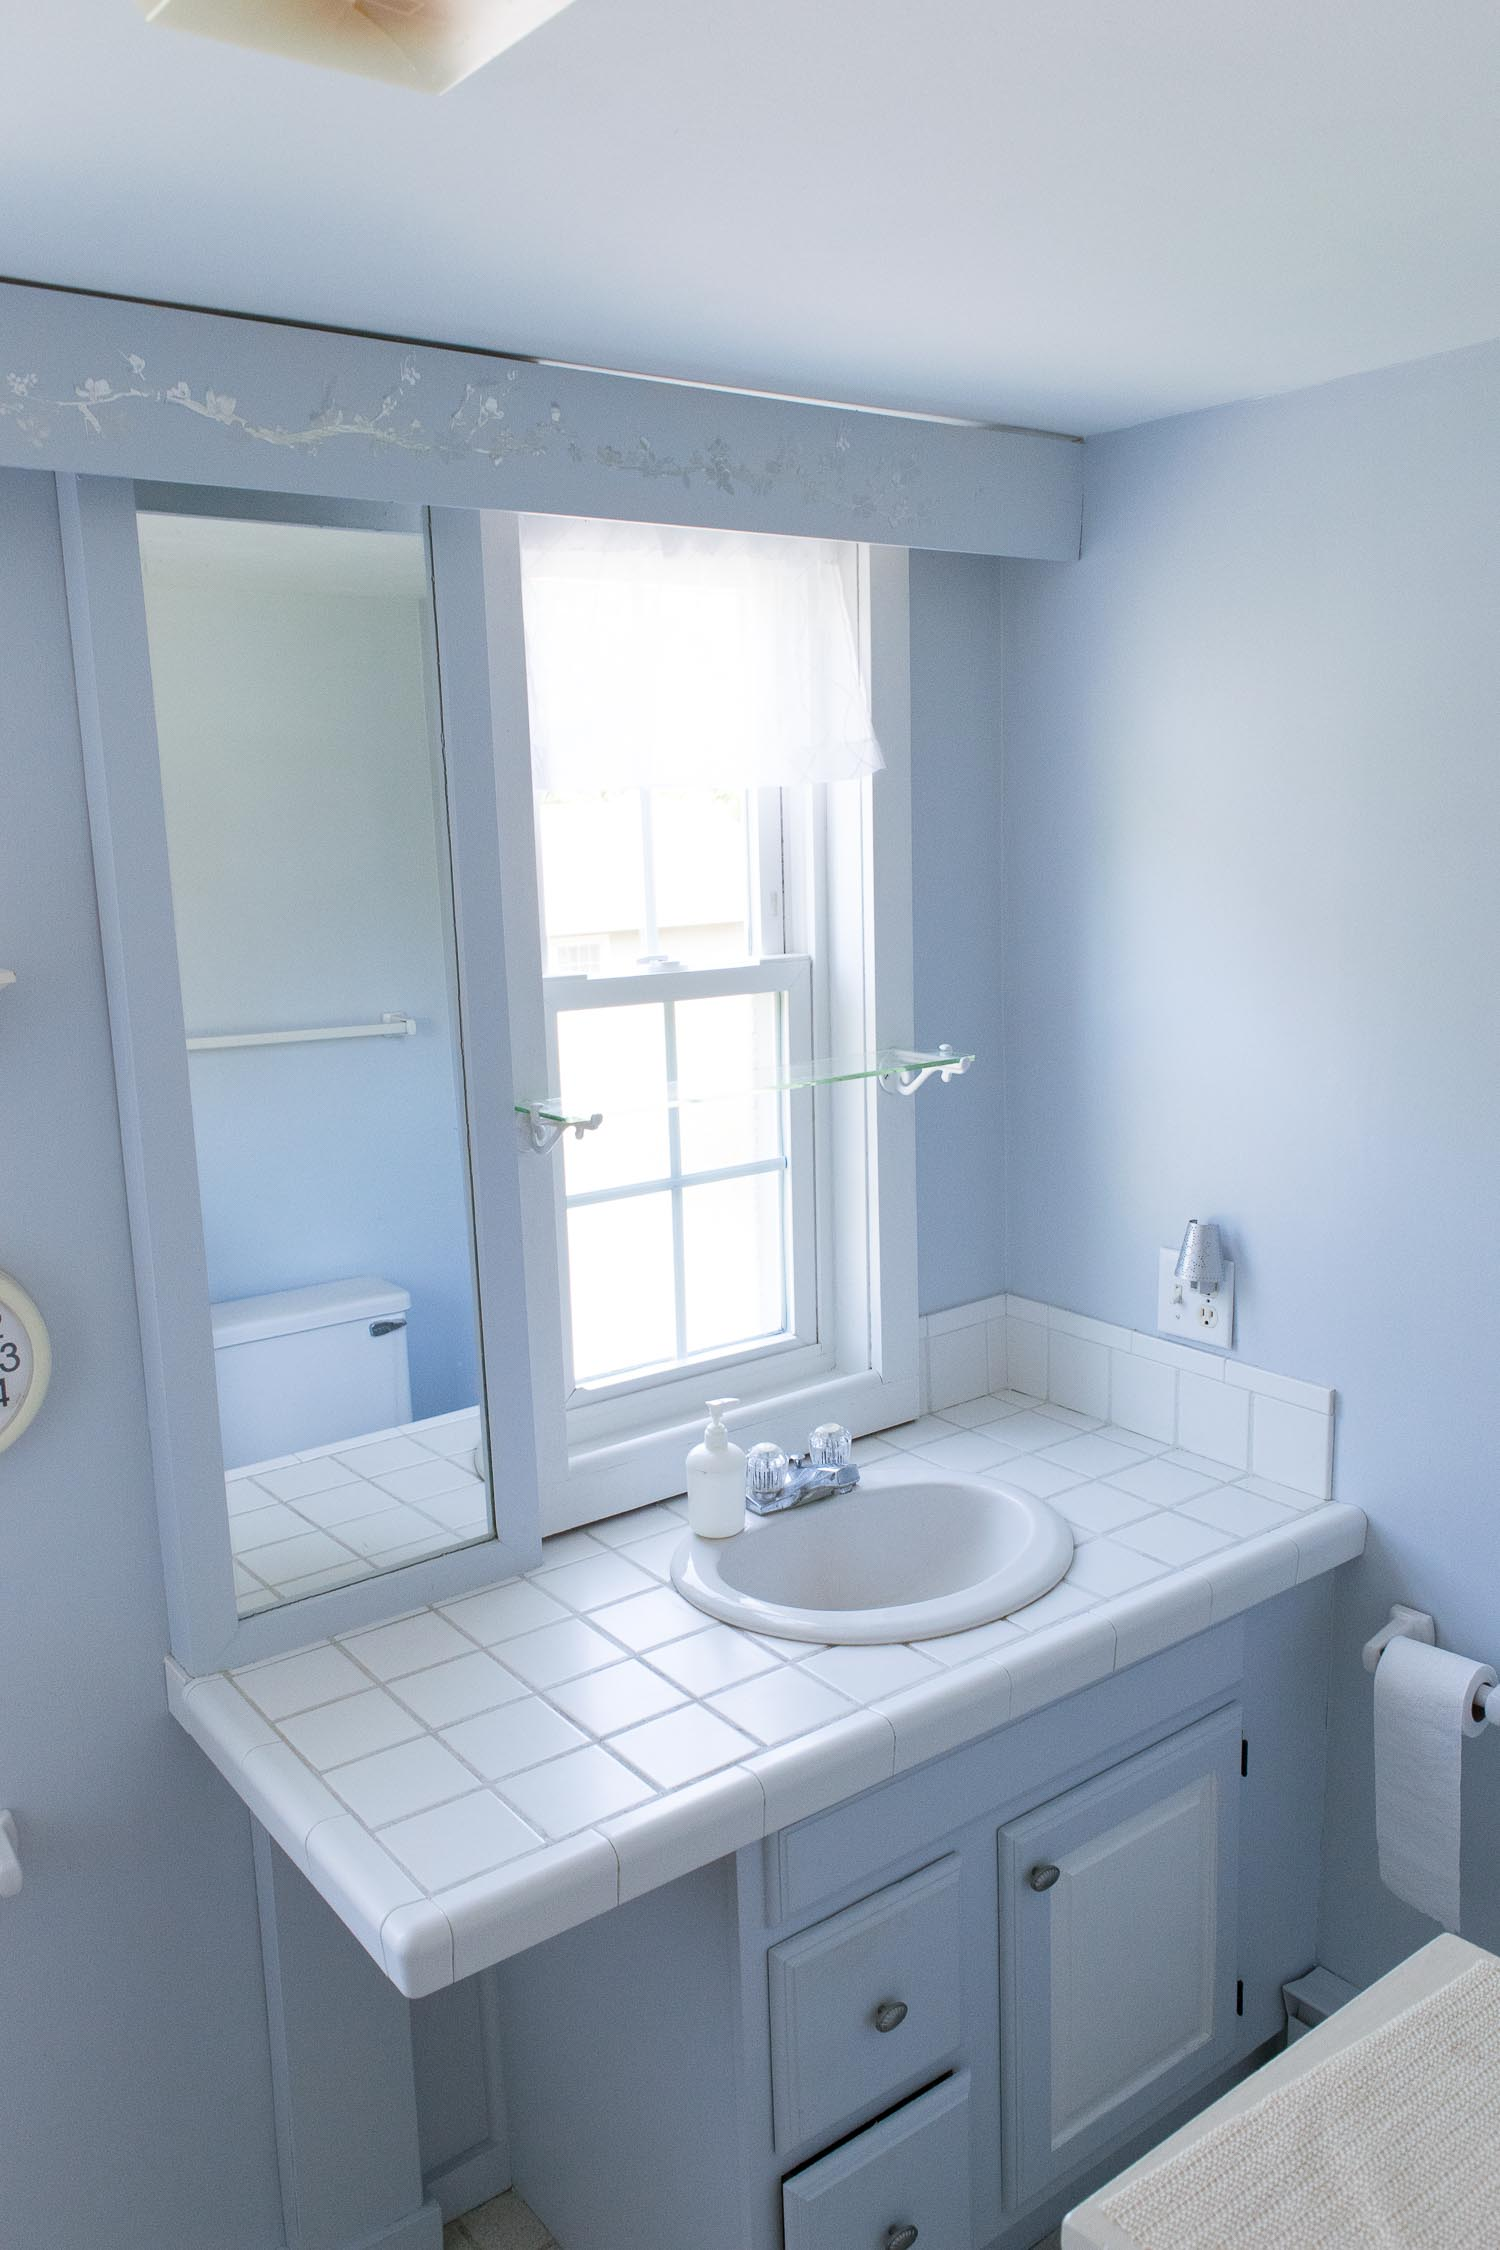 The Bathroom Reveal and Changes in Our Short Term Rental